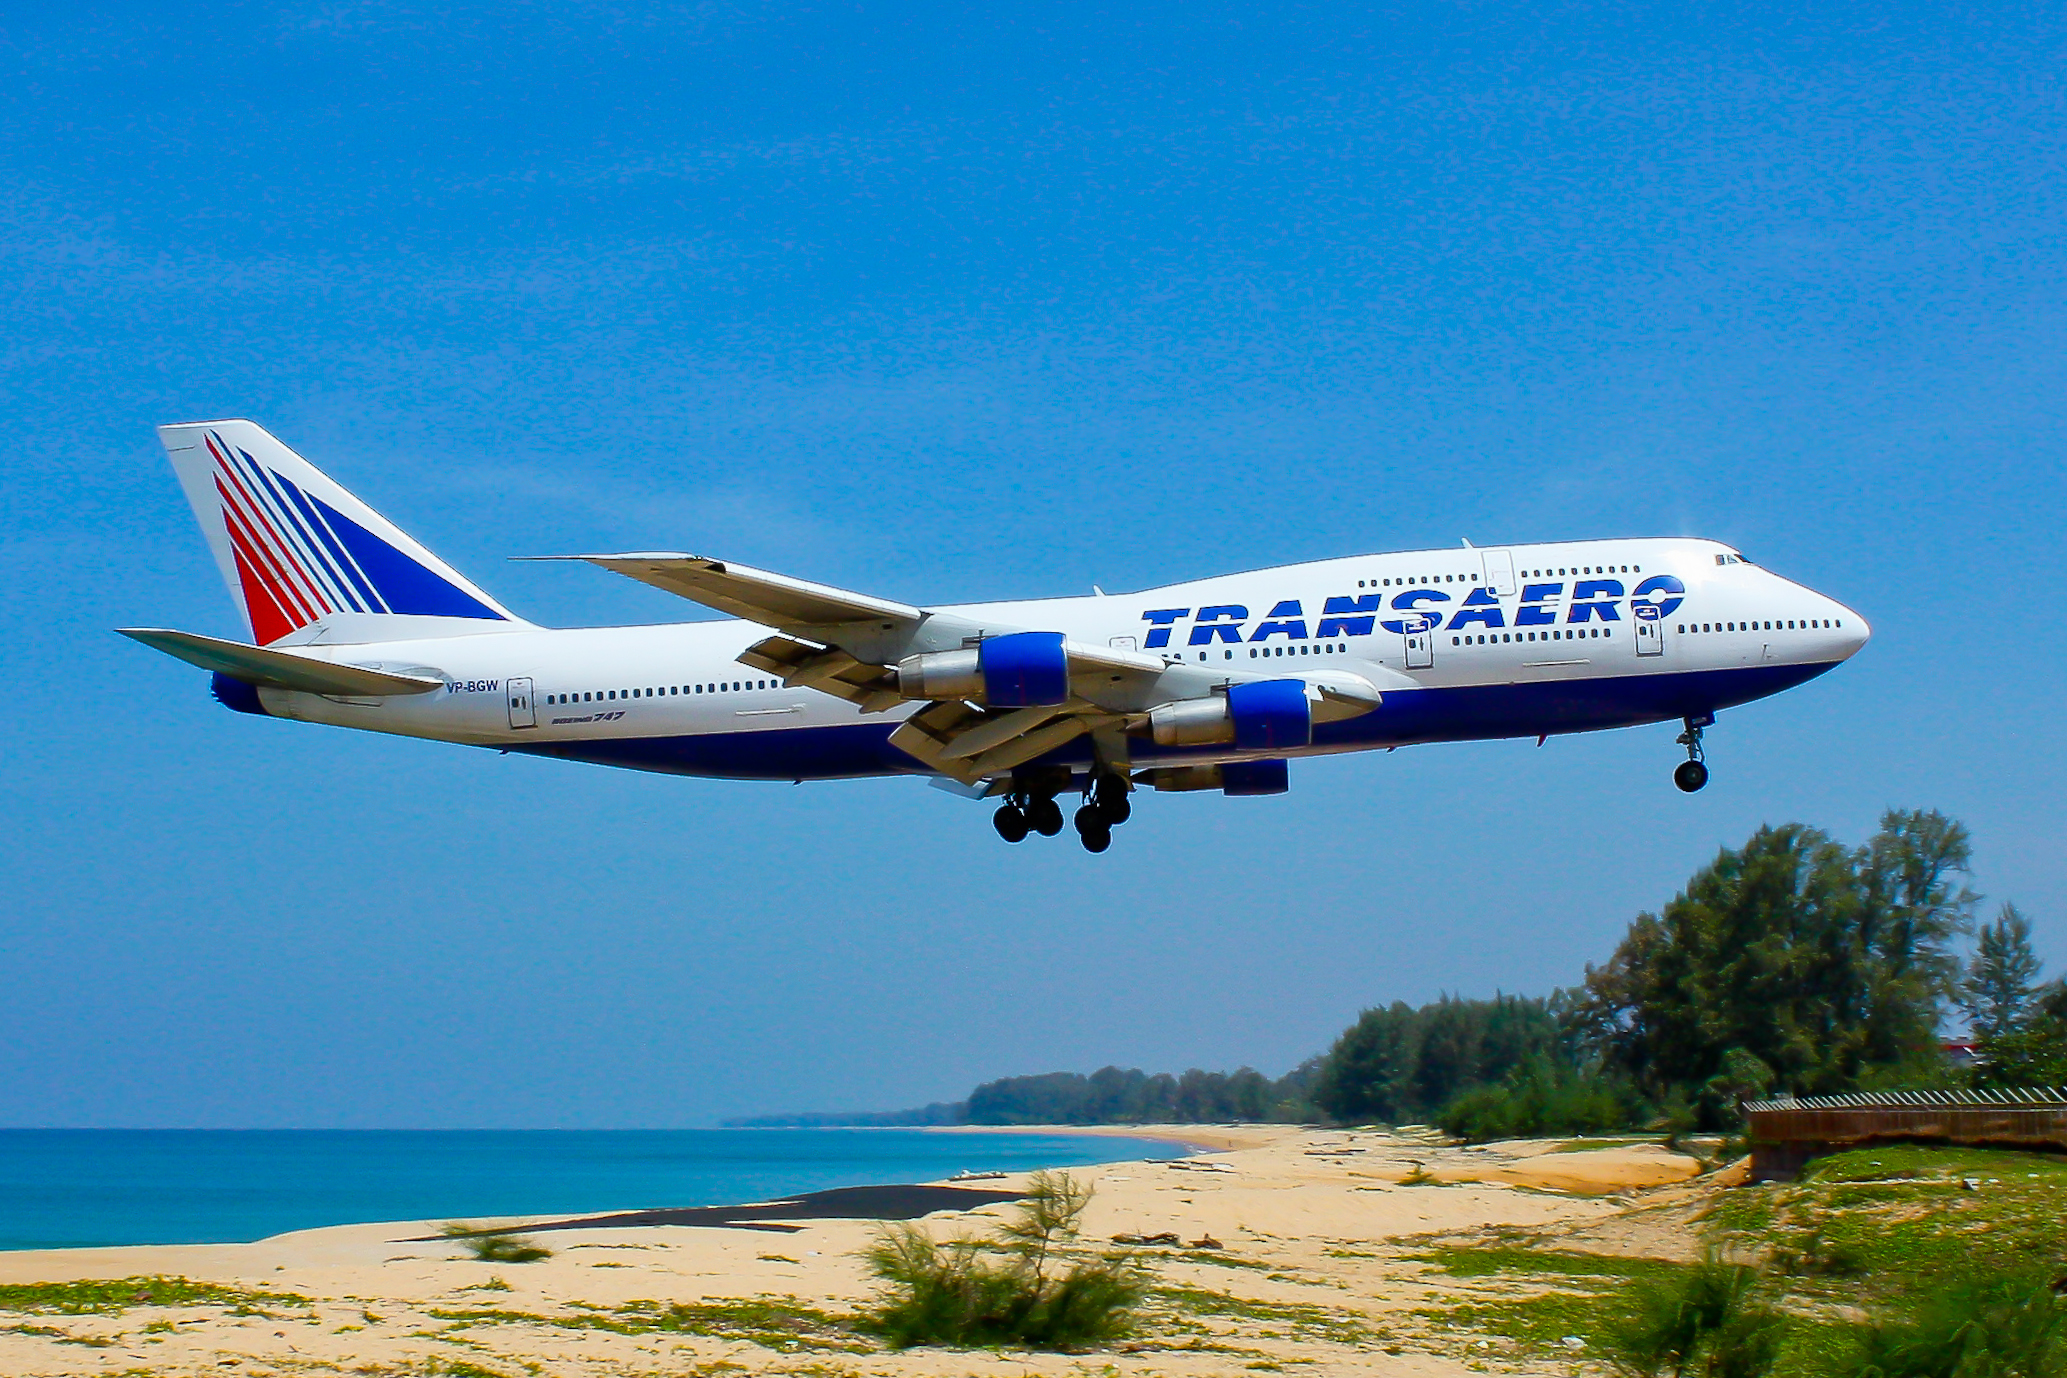 By Andy Mitchell (Flickr: Transaero Airlines B747-300SR VP-BGW) [CC-BY-SA-2.0 (http://creativecommons.org/licenses/by-sa/2.0)], via Wikimedia Commons